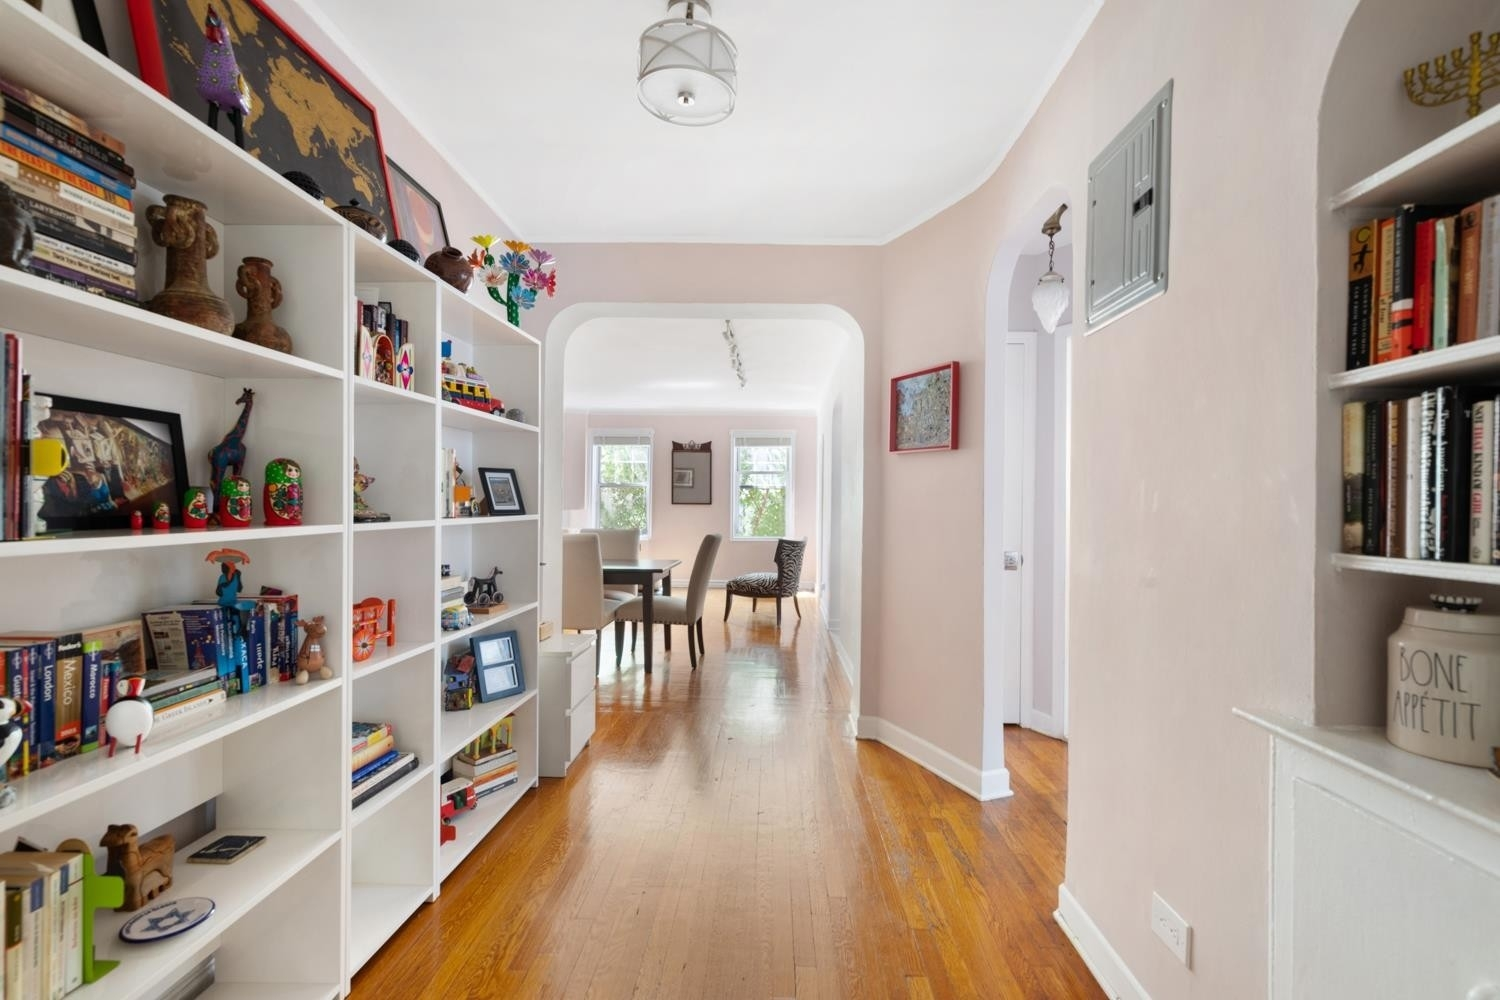 Co-op Properties for Sale at 601 East 19th St, 3R Ditmas Park, Brooklyn, NY 11226